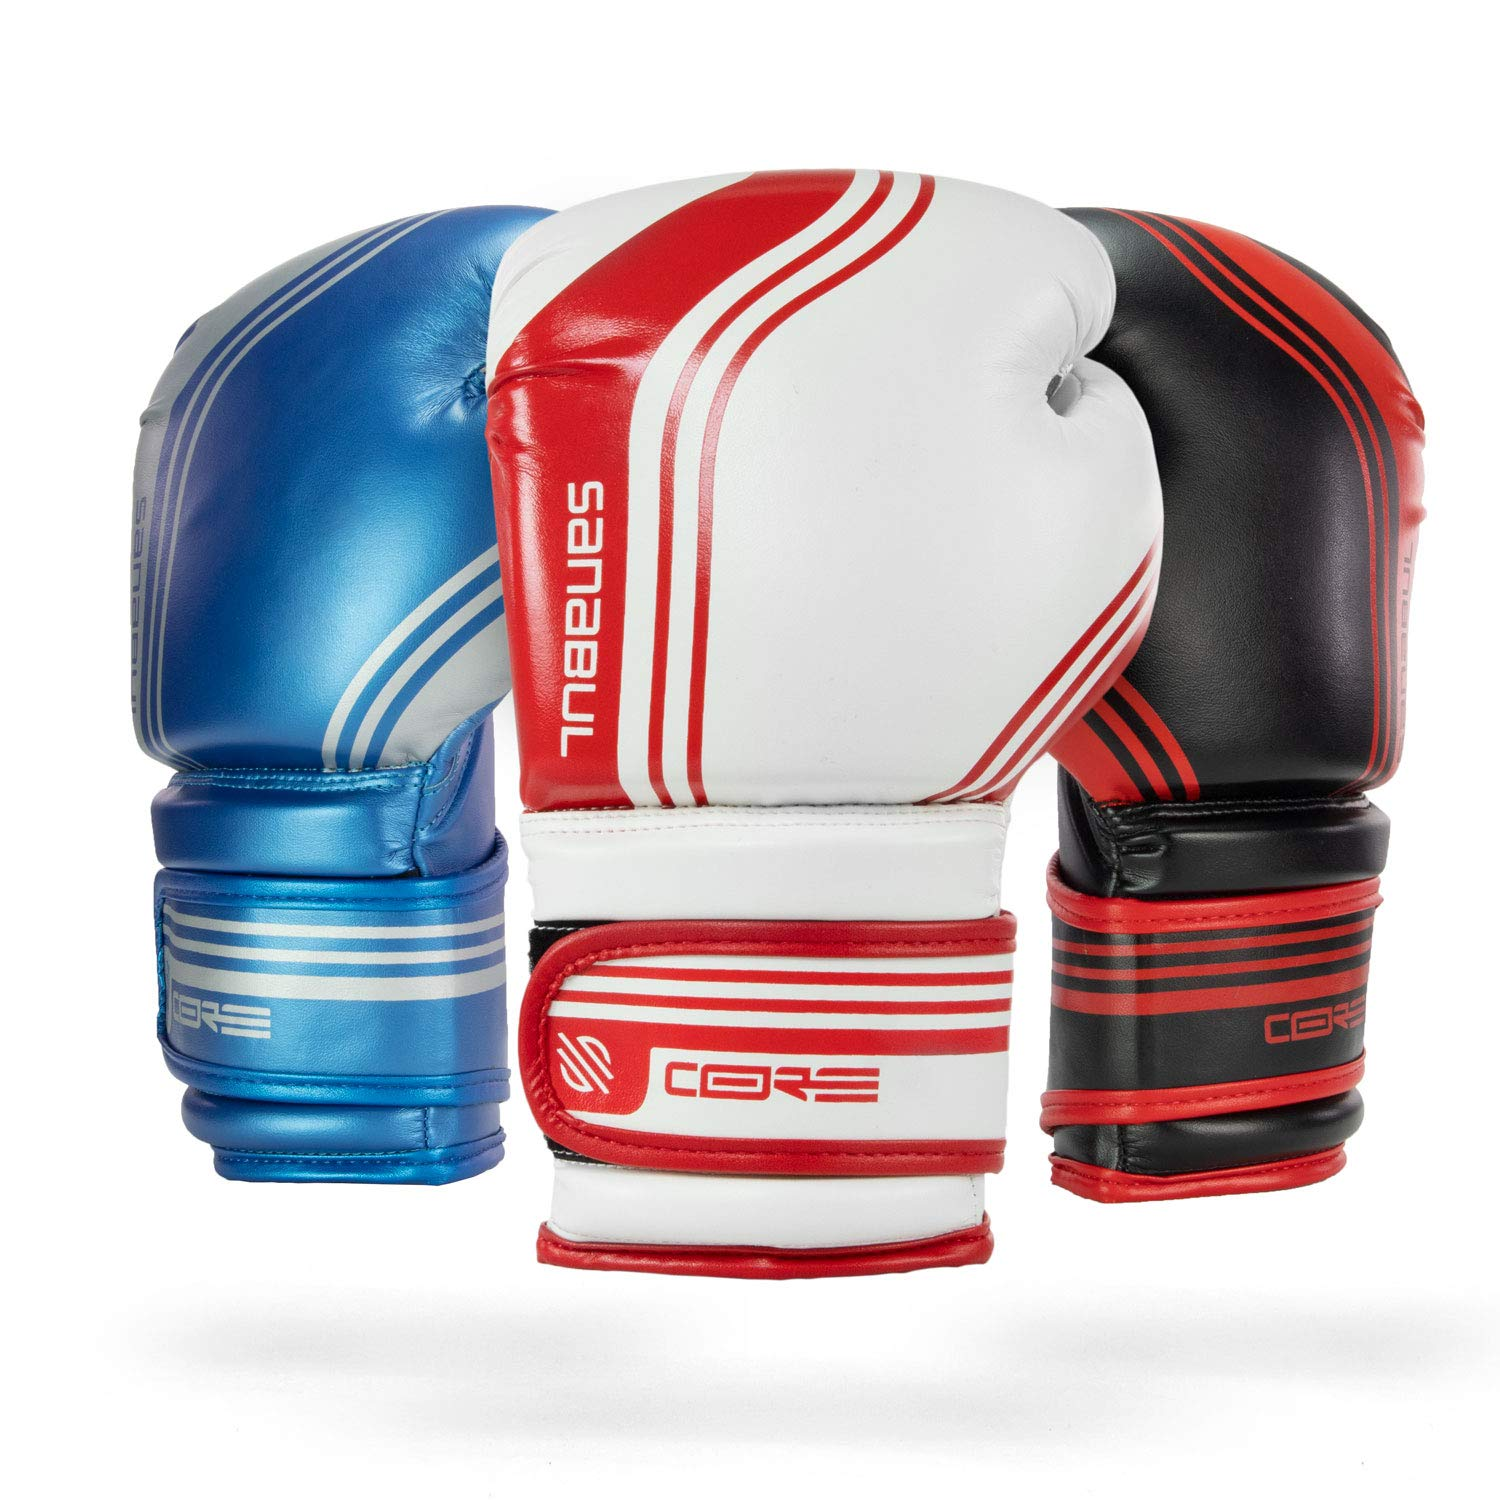 Sanabul Core Boxing Gloves (White/Red, 16 oz)